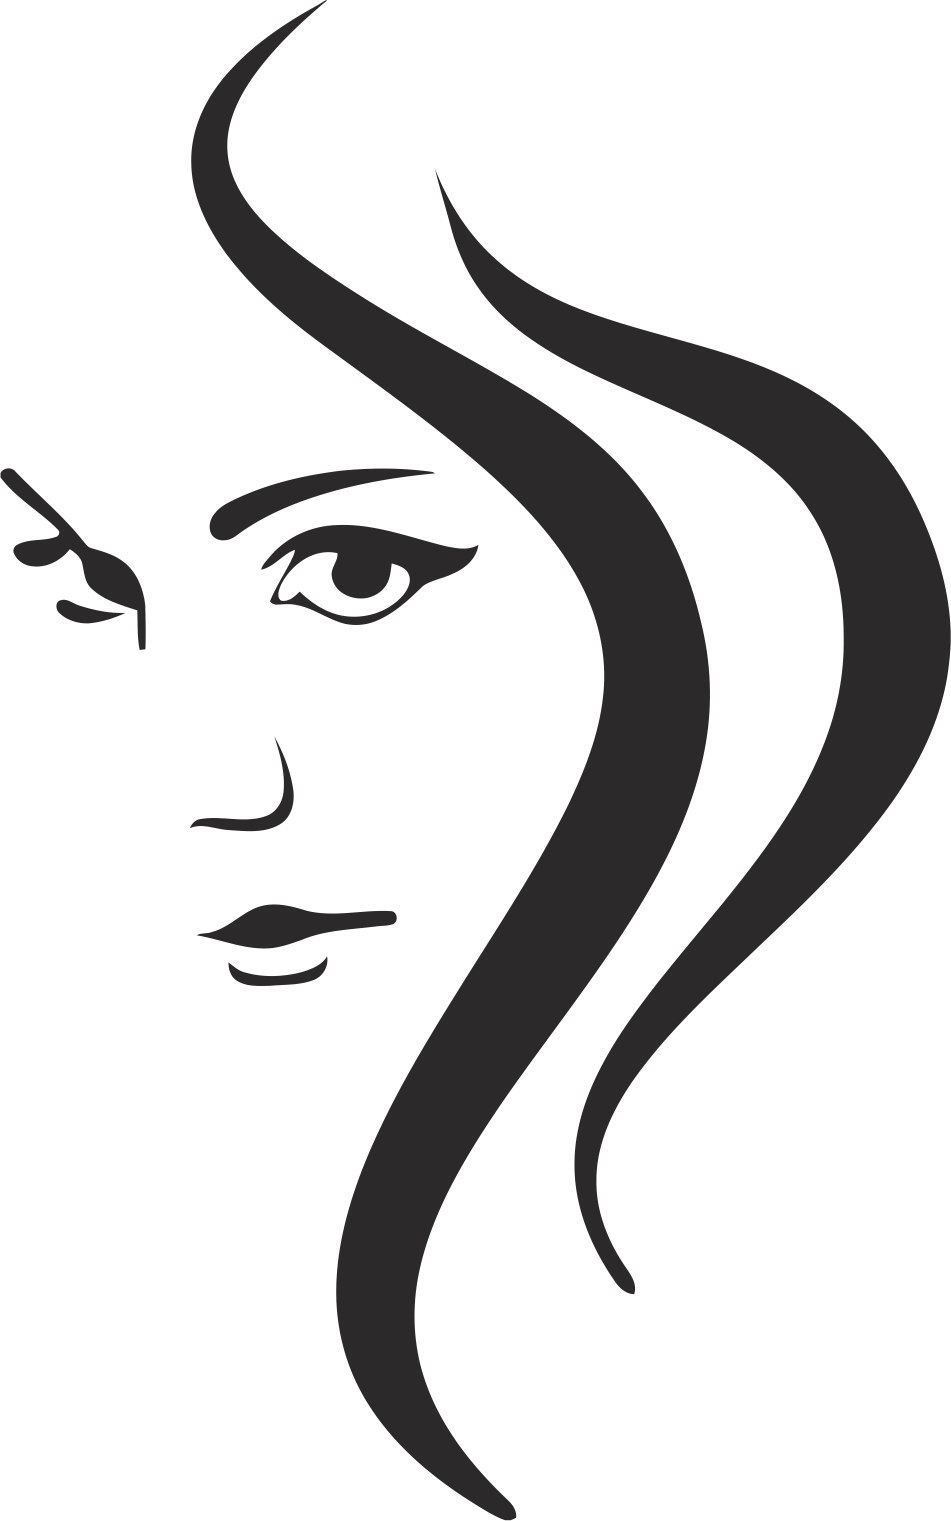 951x1521 Woman Silhouette Coreldraw Vector (.cdr) File Free Download